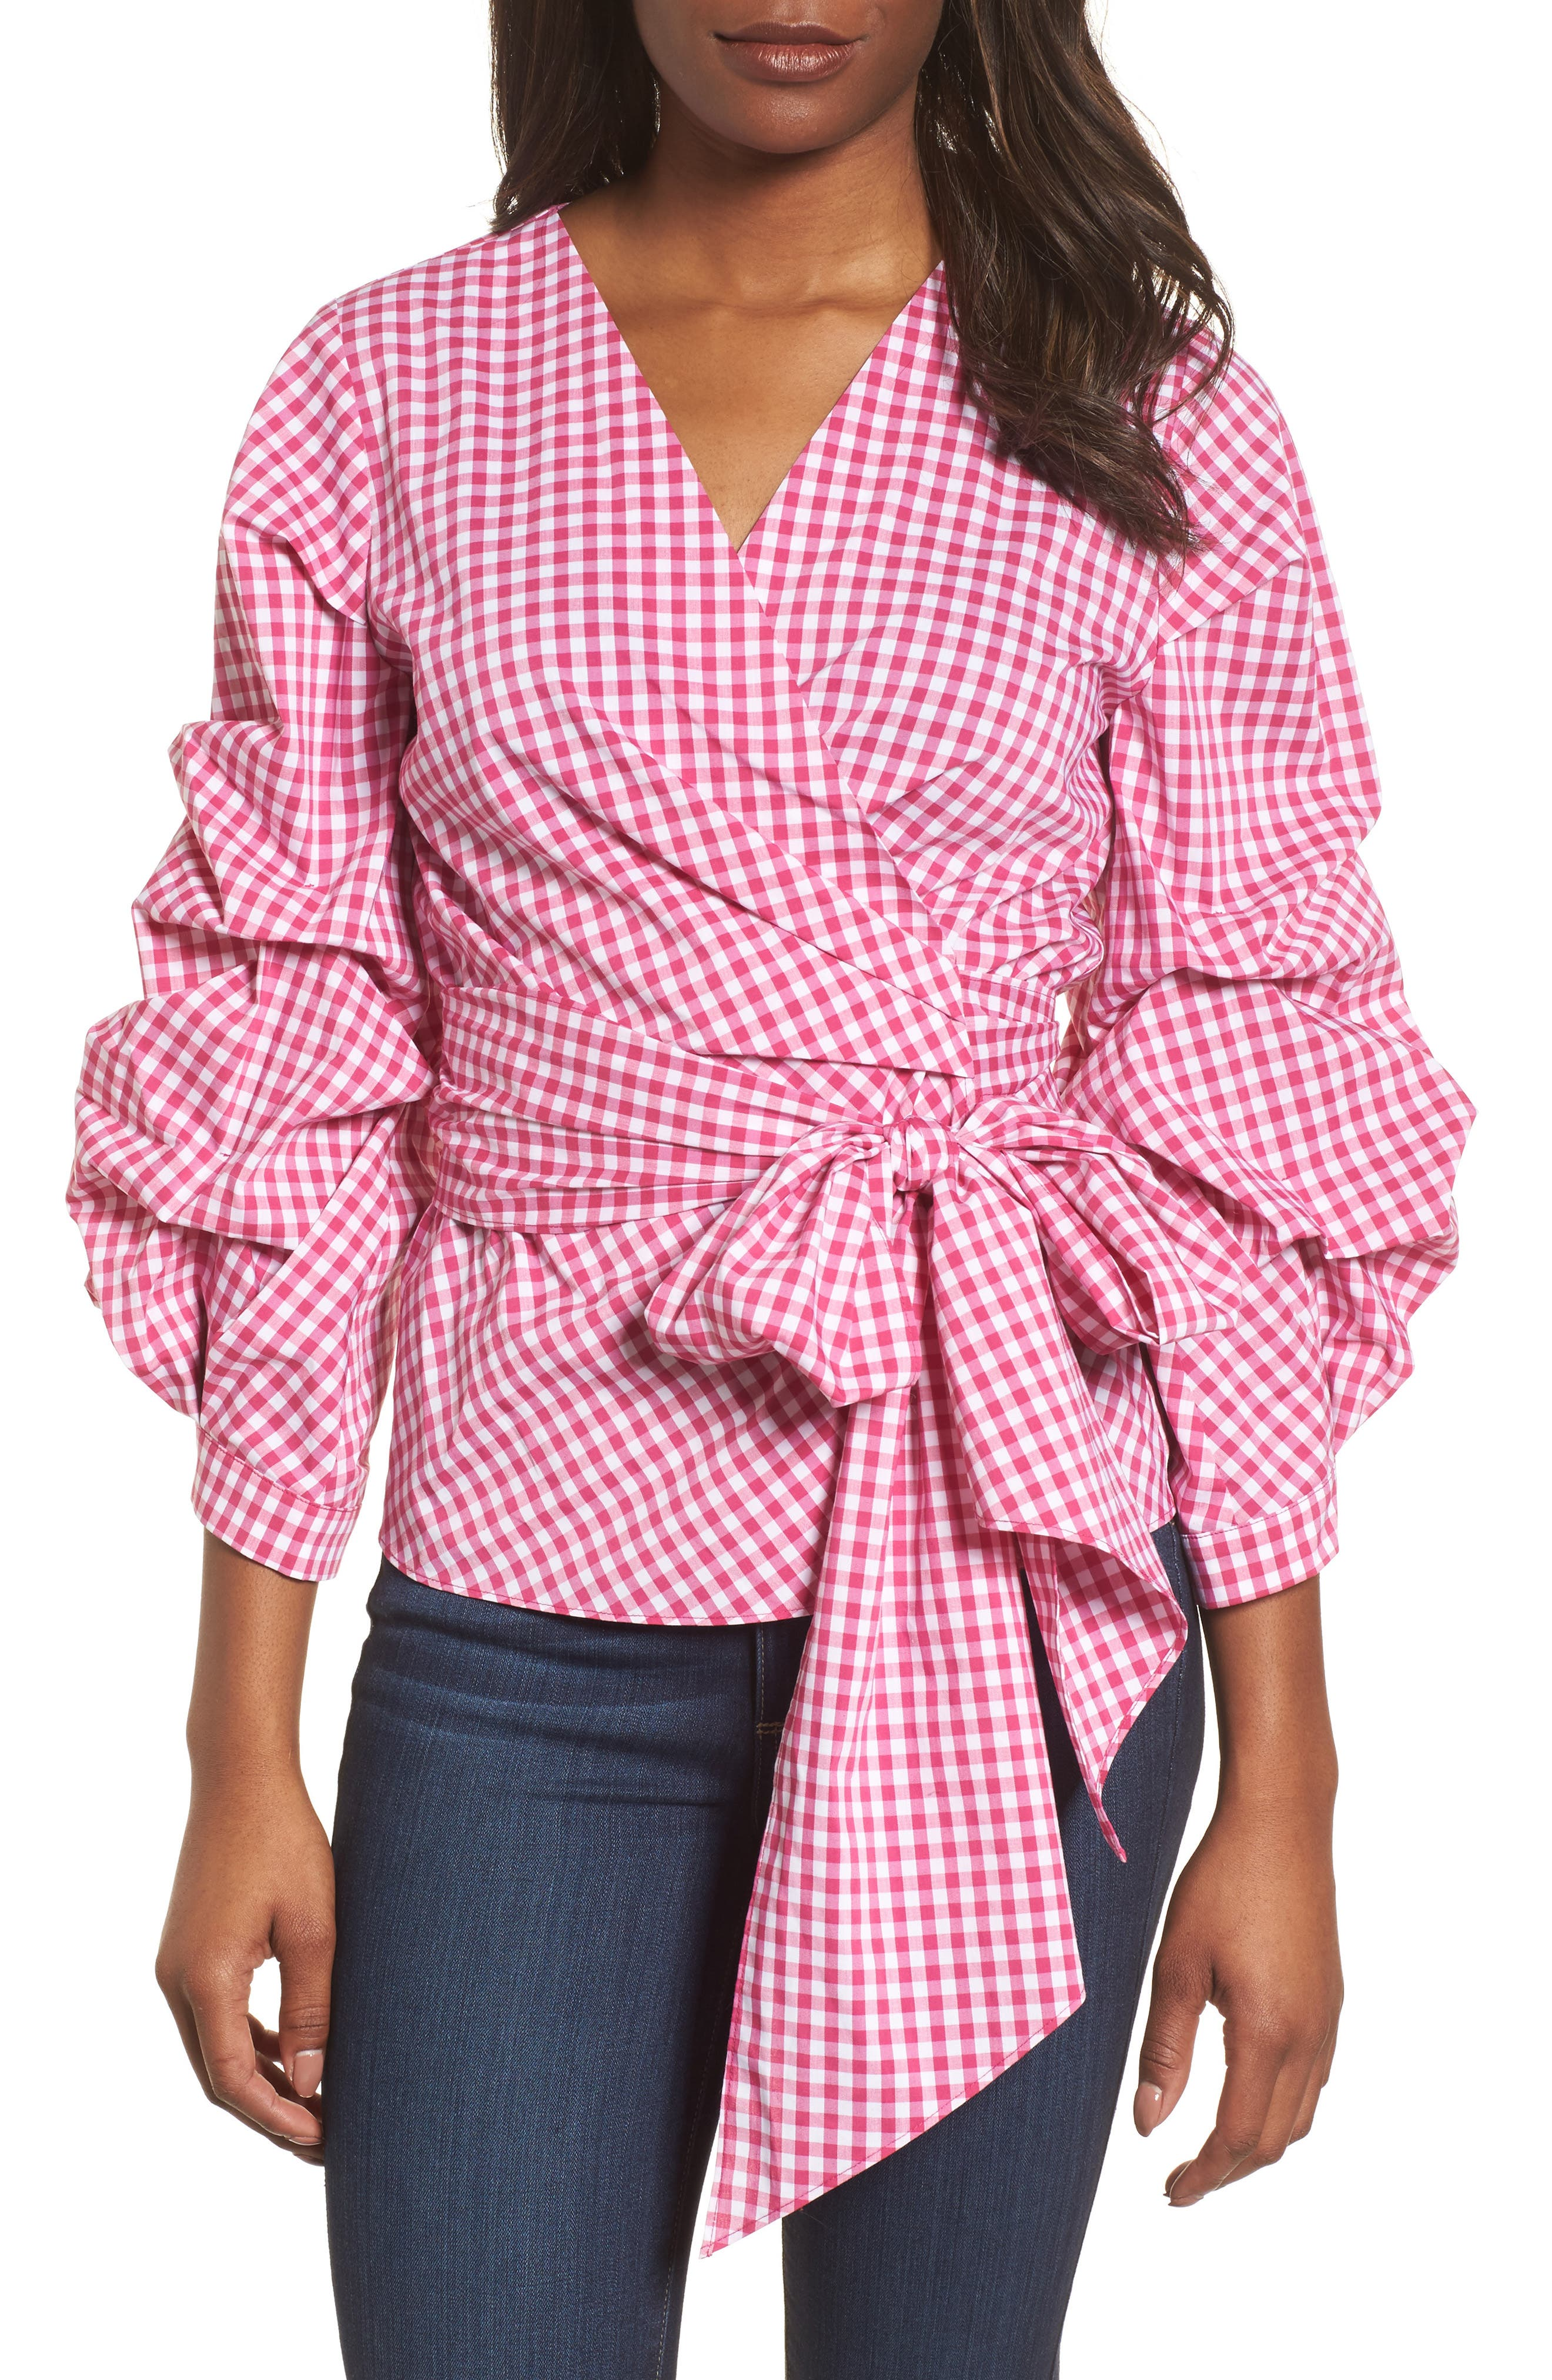 Pintuck Blouson Sleeve Wrap Top,                         Main,                         color, Pink- White Gingham